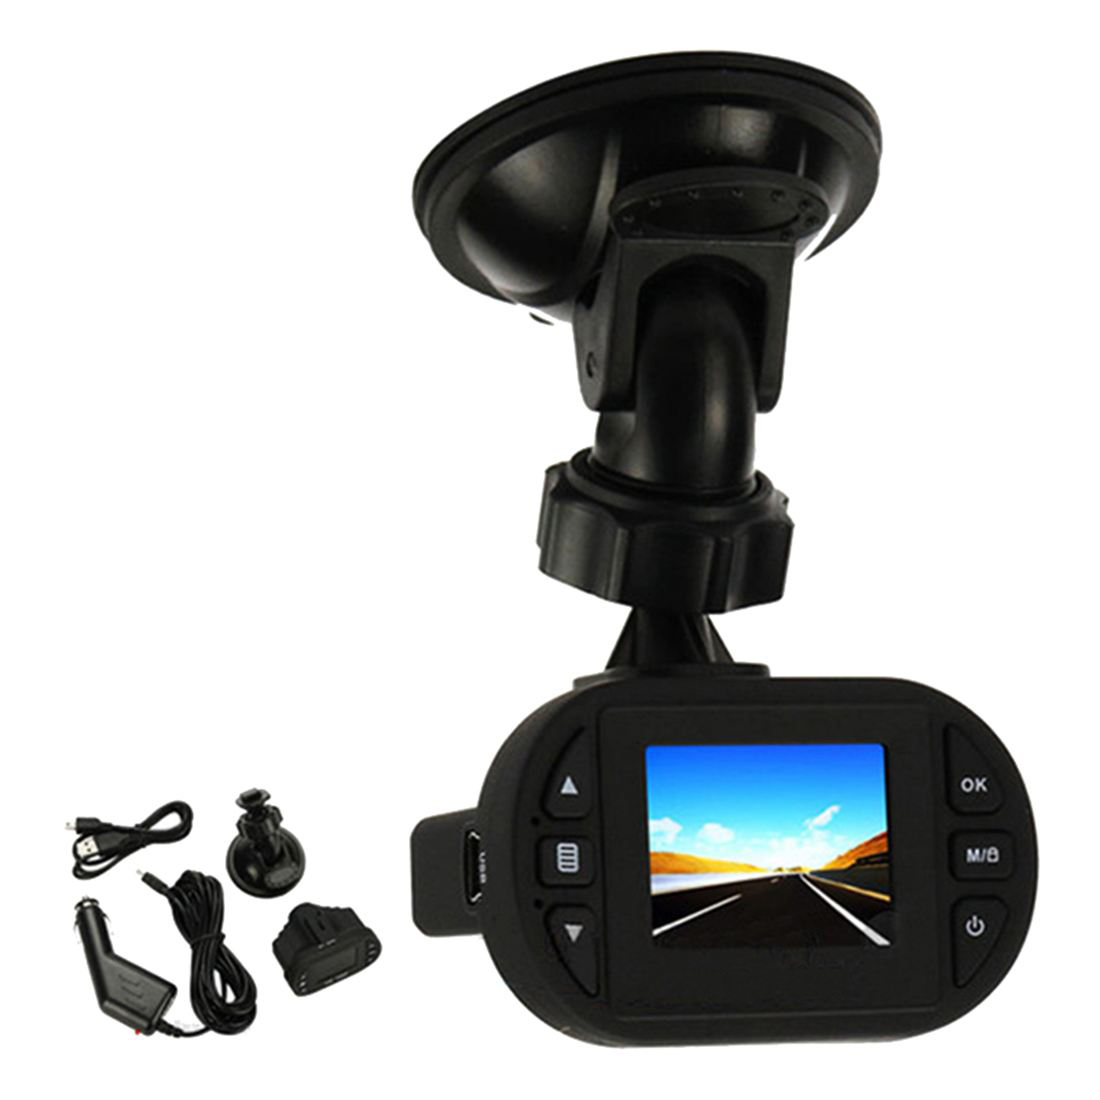 HD 1.5 Full 1080P LCD Car DVR Vehicle Camera Video Recorder Dash Cam G-sensor